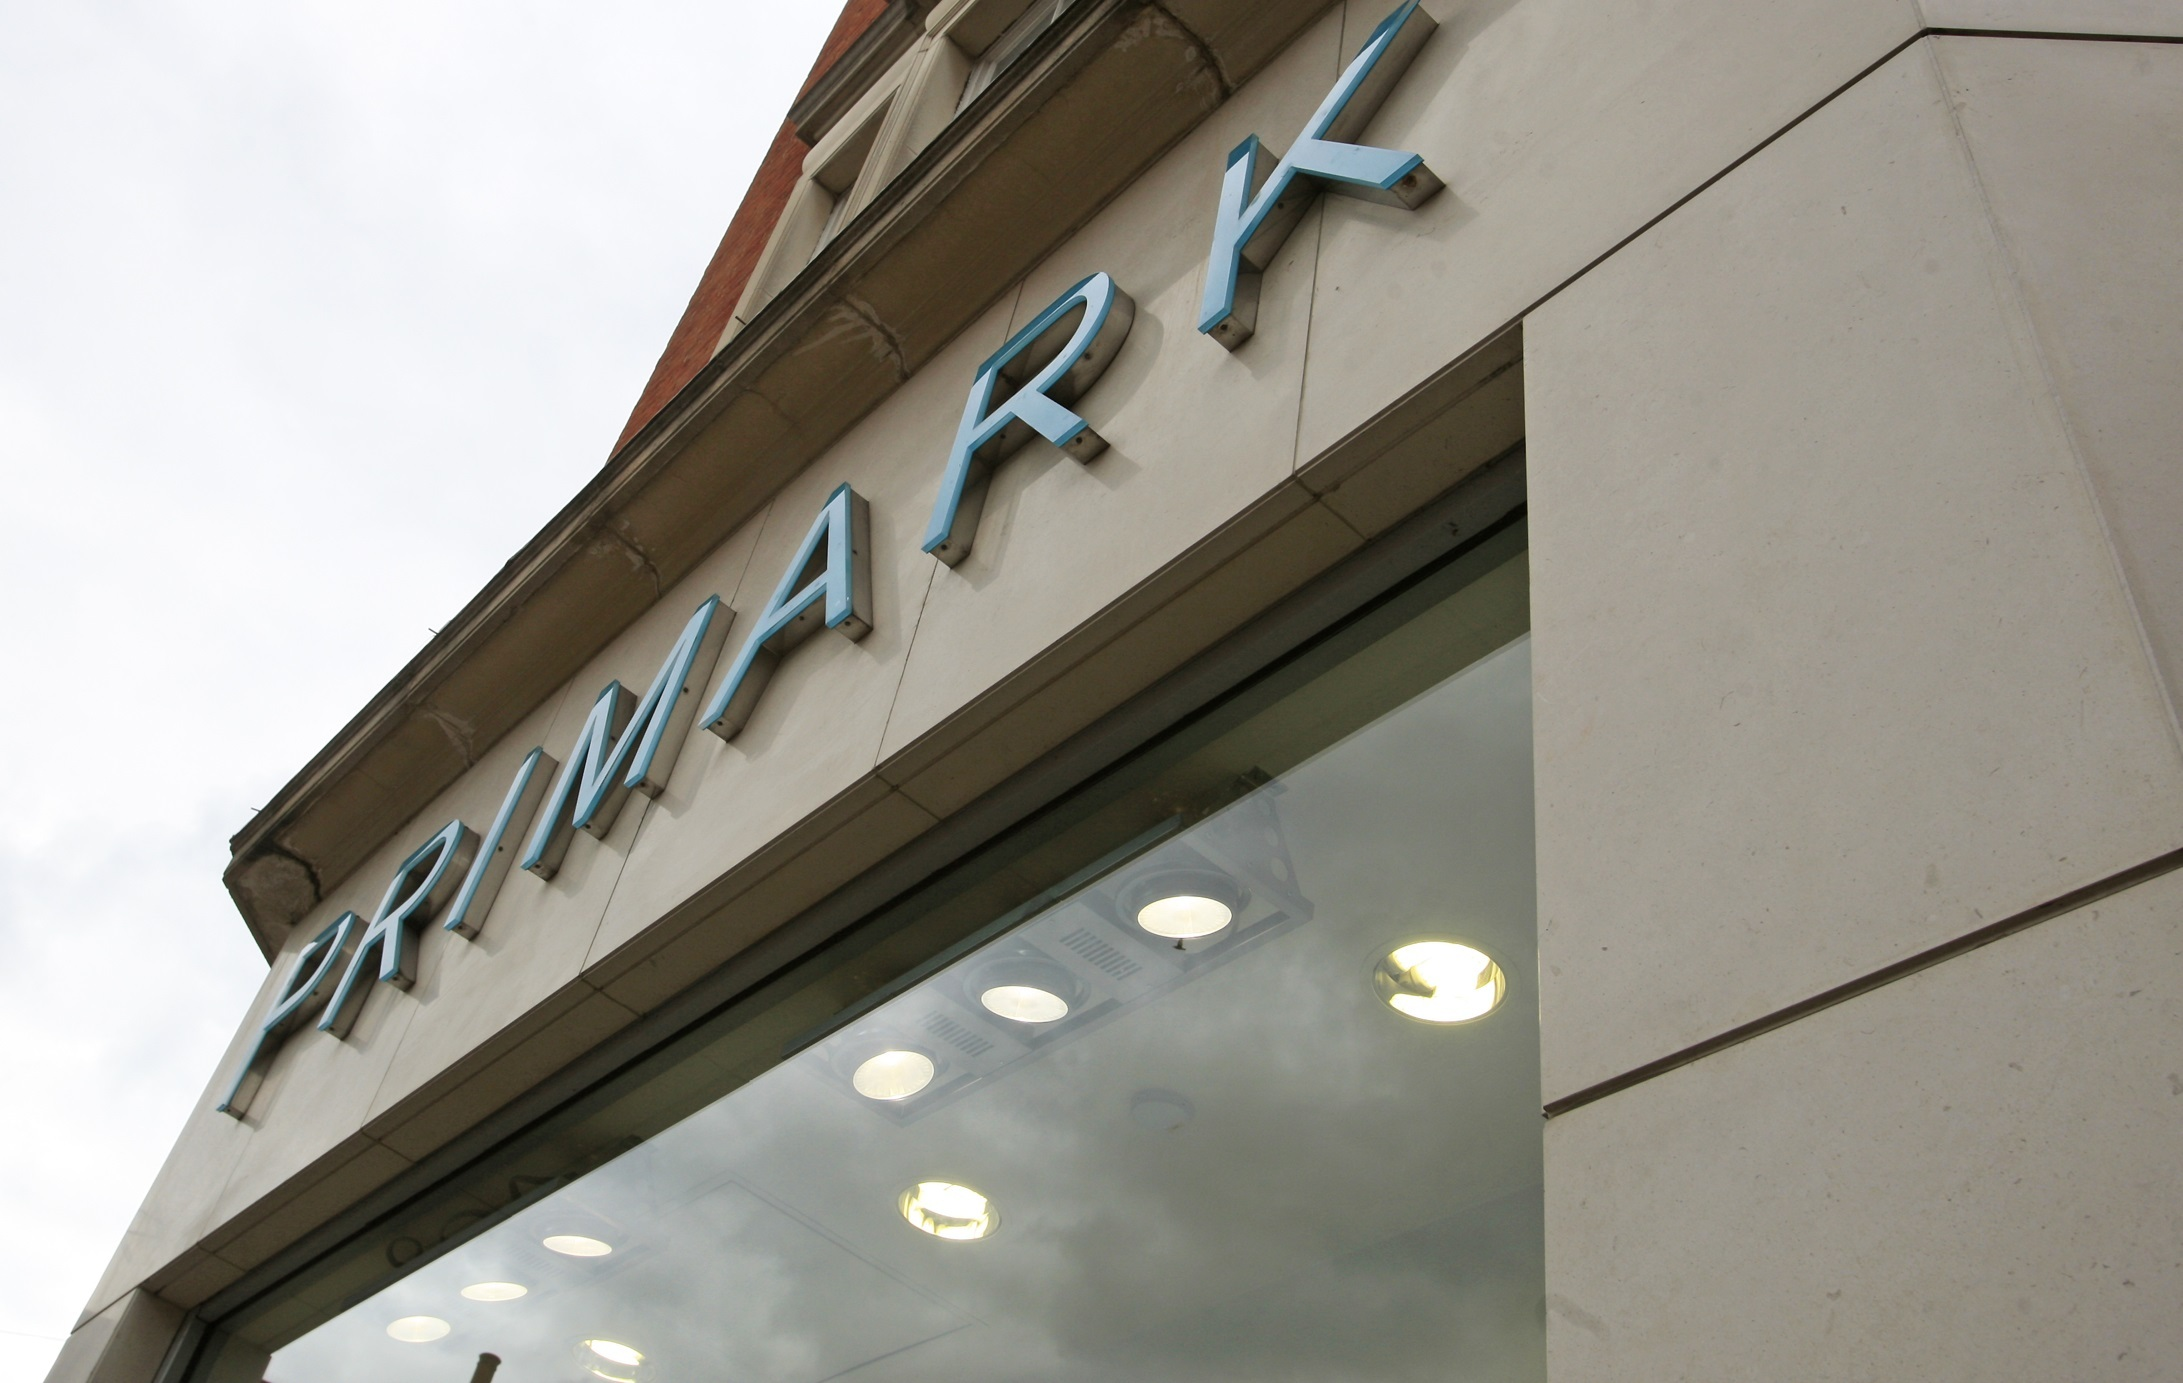 New Primark to open in Charlton